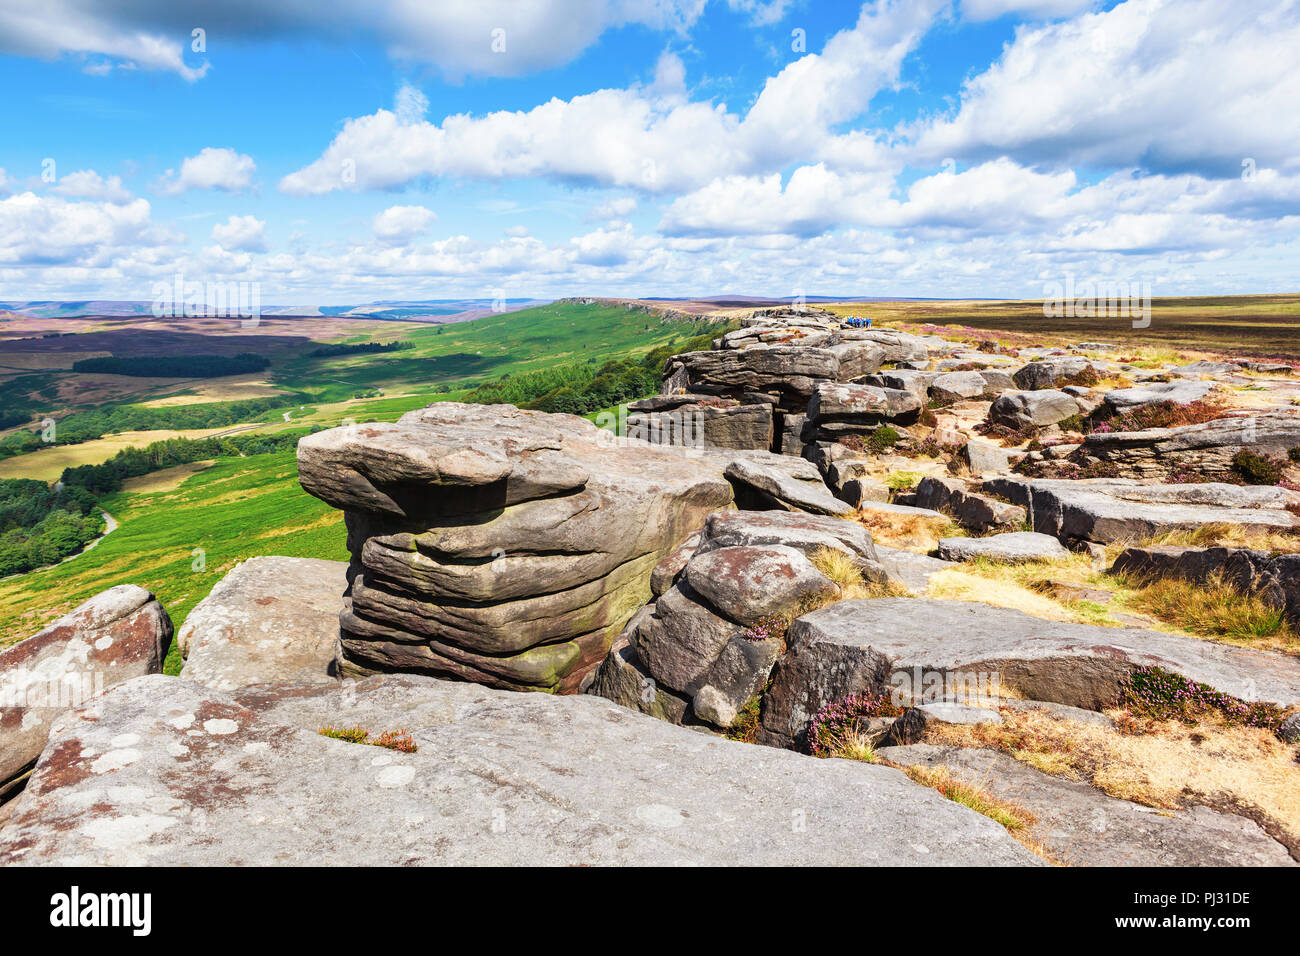 Rock formations in Stanage edge, with the fields and pastures on the background. Peak District National Park, Derbyshire, England , selective focus - Stock Image